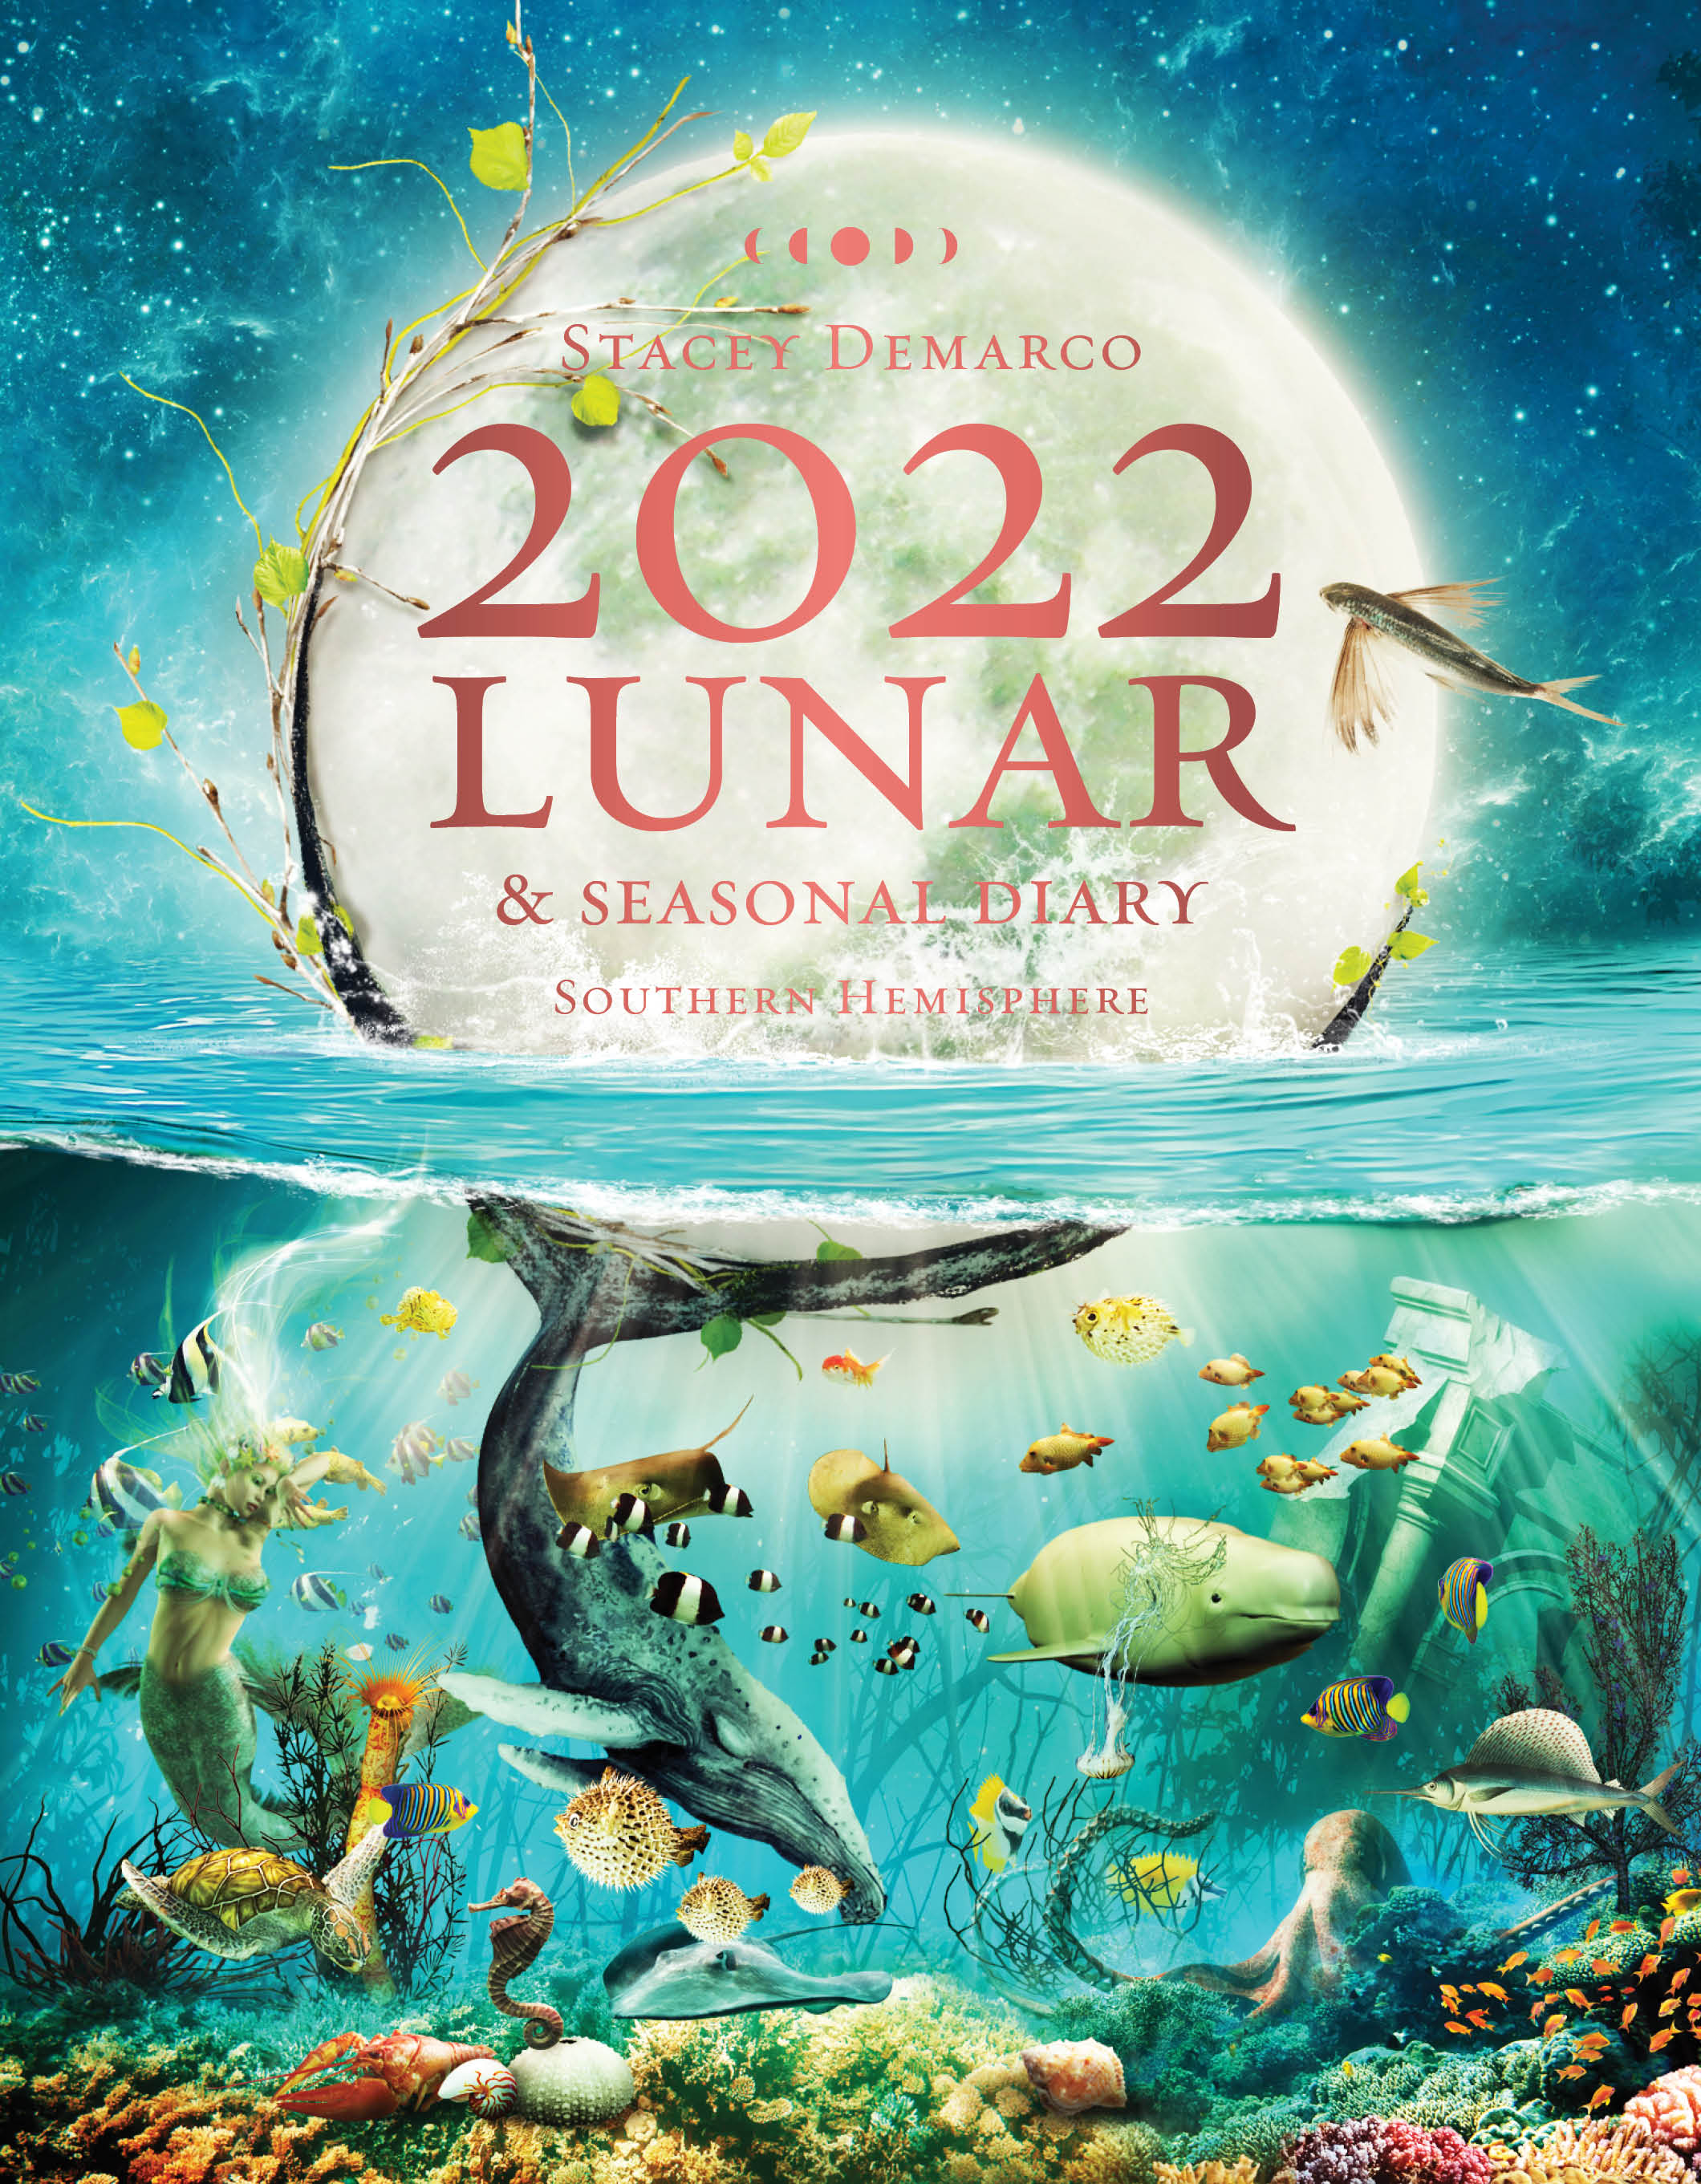 2022 Lunar and Seasonal Diary- Southern Hemisphere